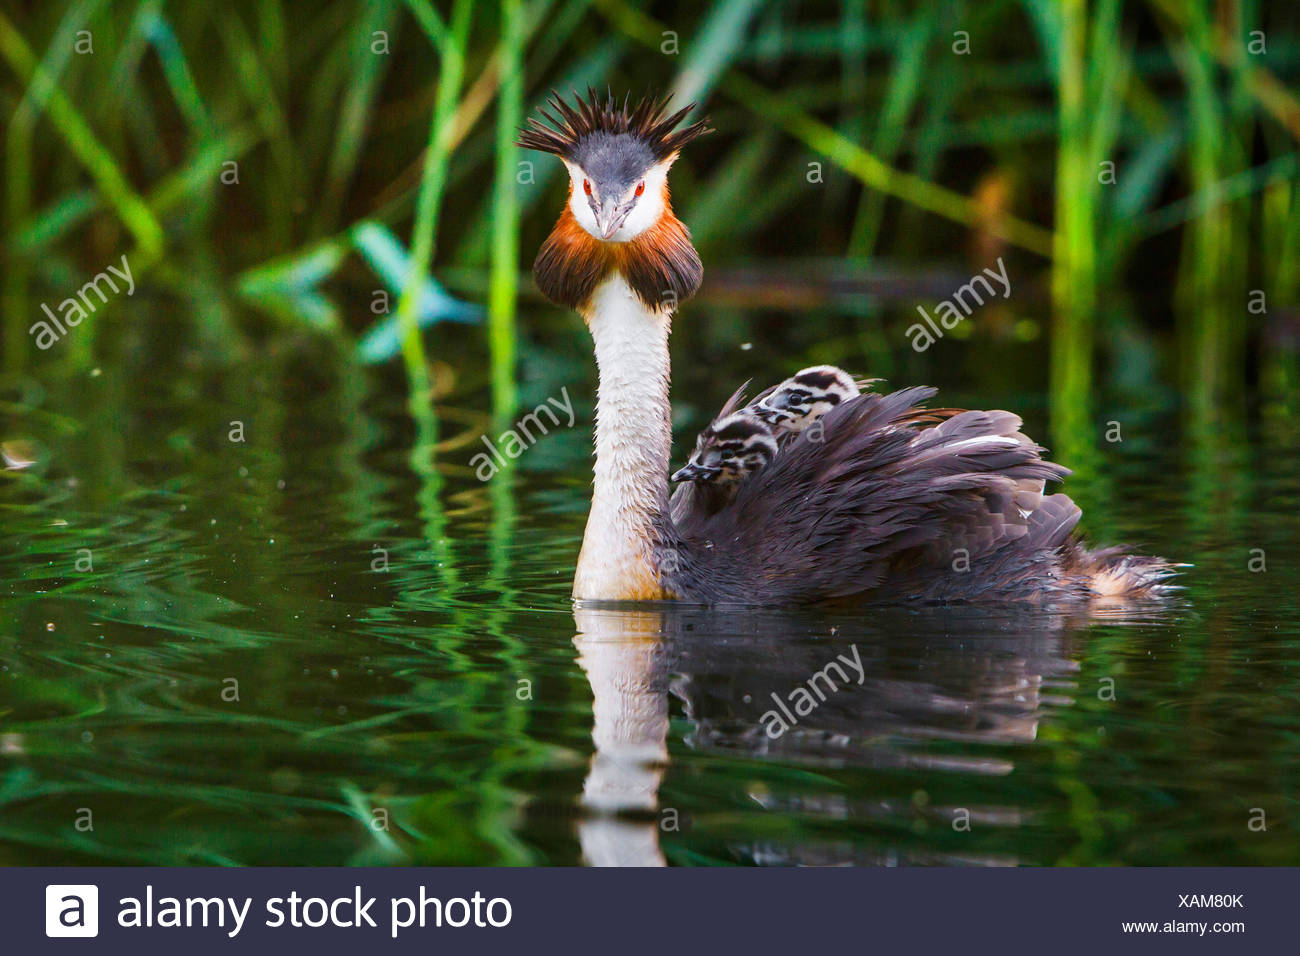 great crested grebe (Podiceps cristatus), swims with two chicks on its back, Switzerland, Lake Constance - Stock Image